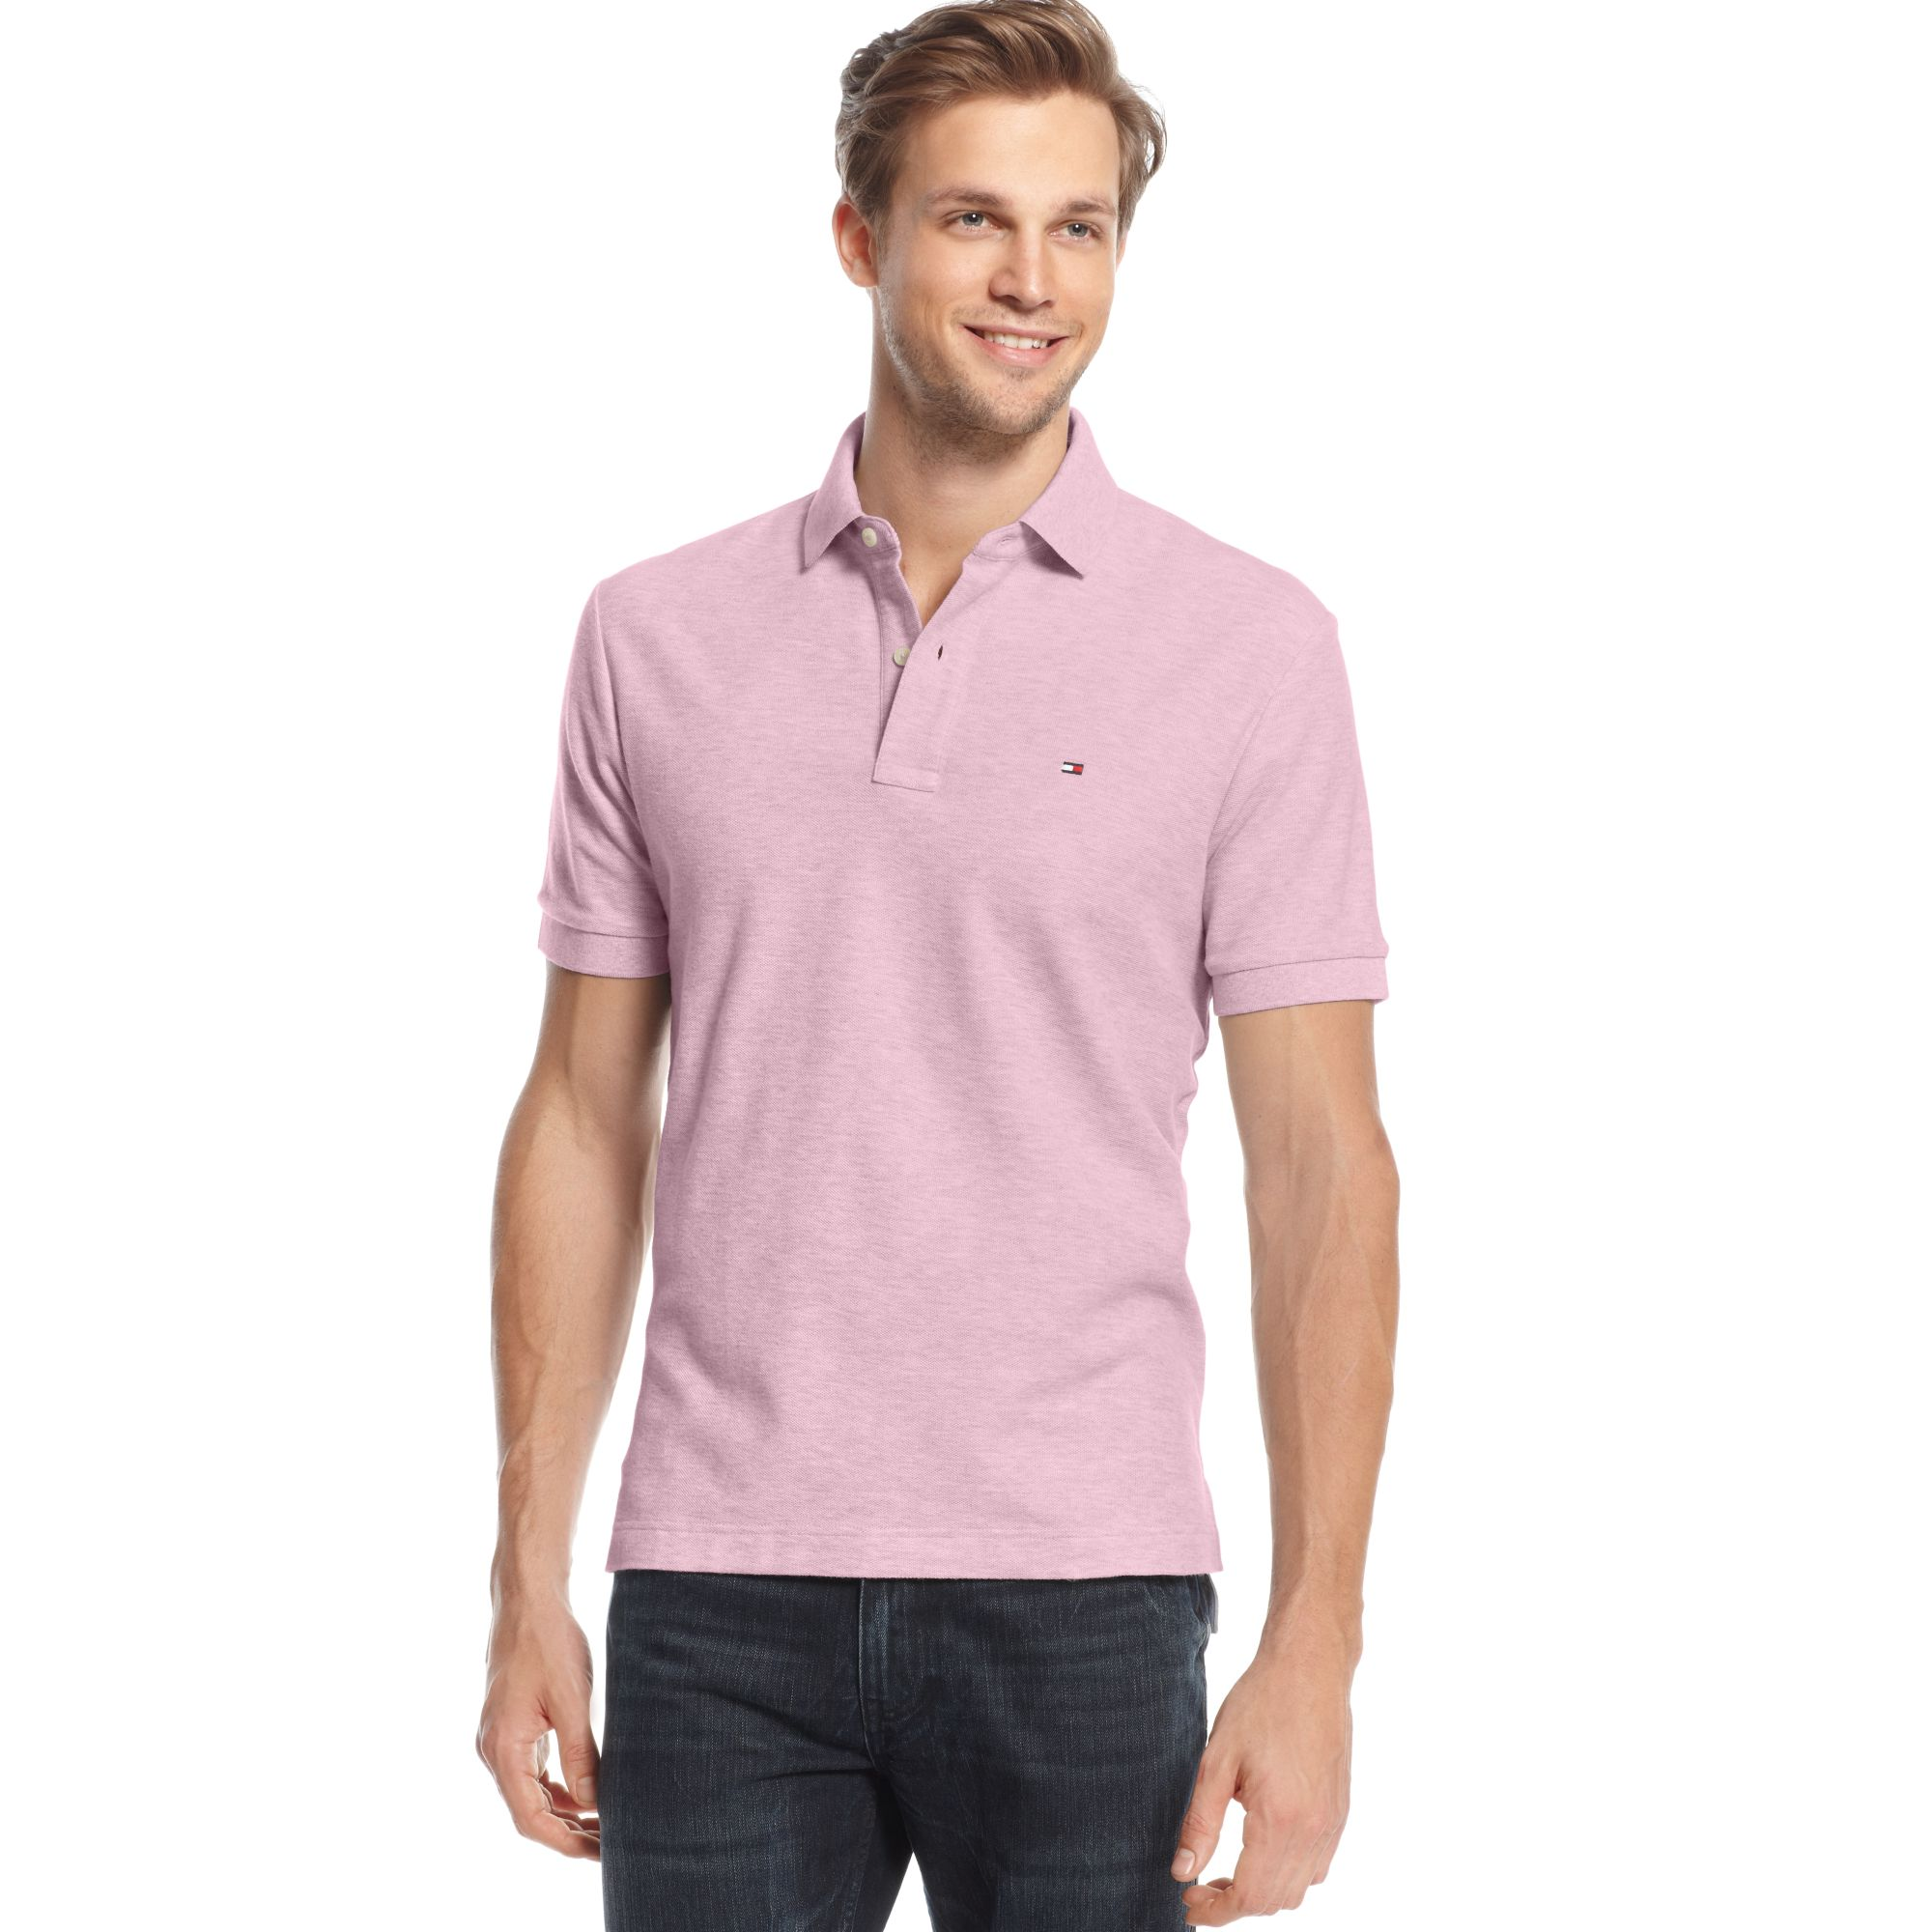 16aa7bf8e2e Lyst - Tommy Hilfiger Ivy Short Sleeve Polo Shirt in Pink for Men